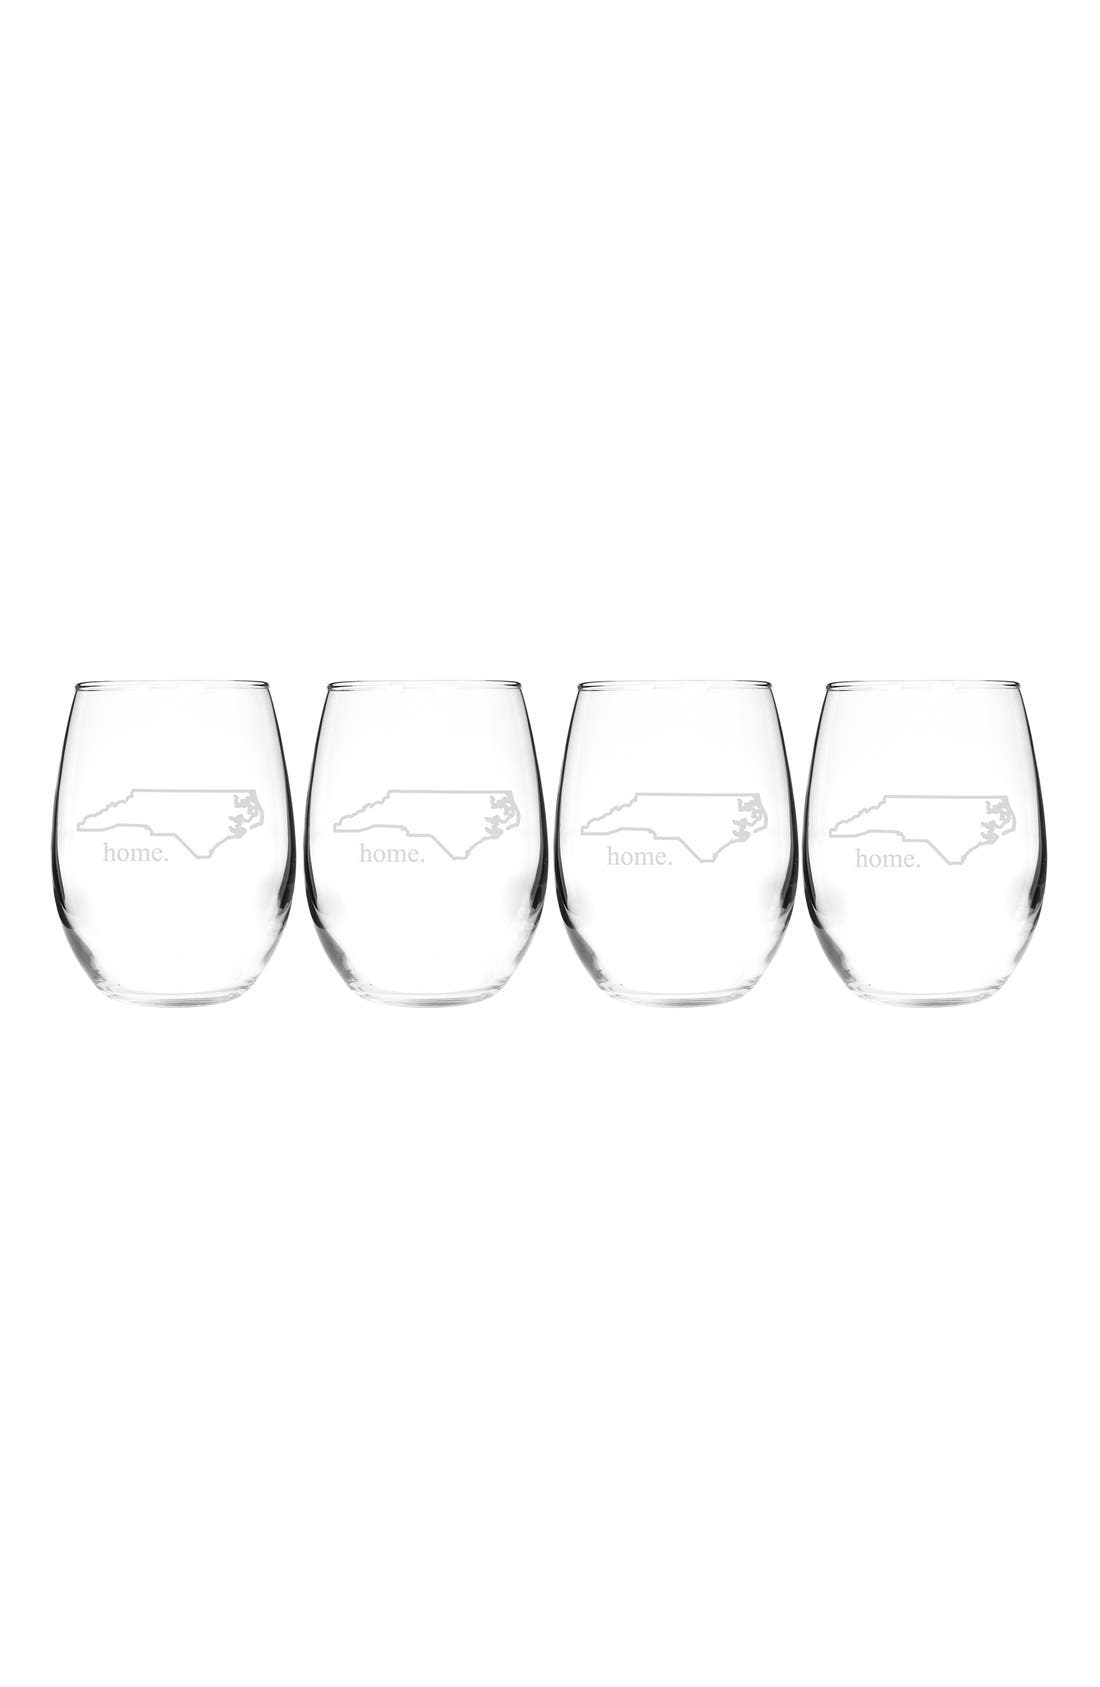 Home State Set of 4 Stemless Wine Glasses,                             Main thumbnail 28, color,